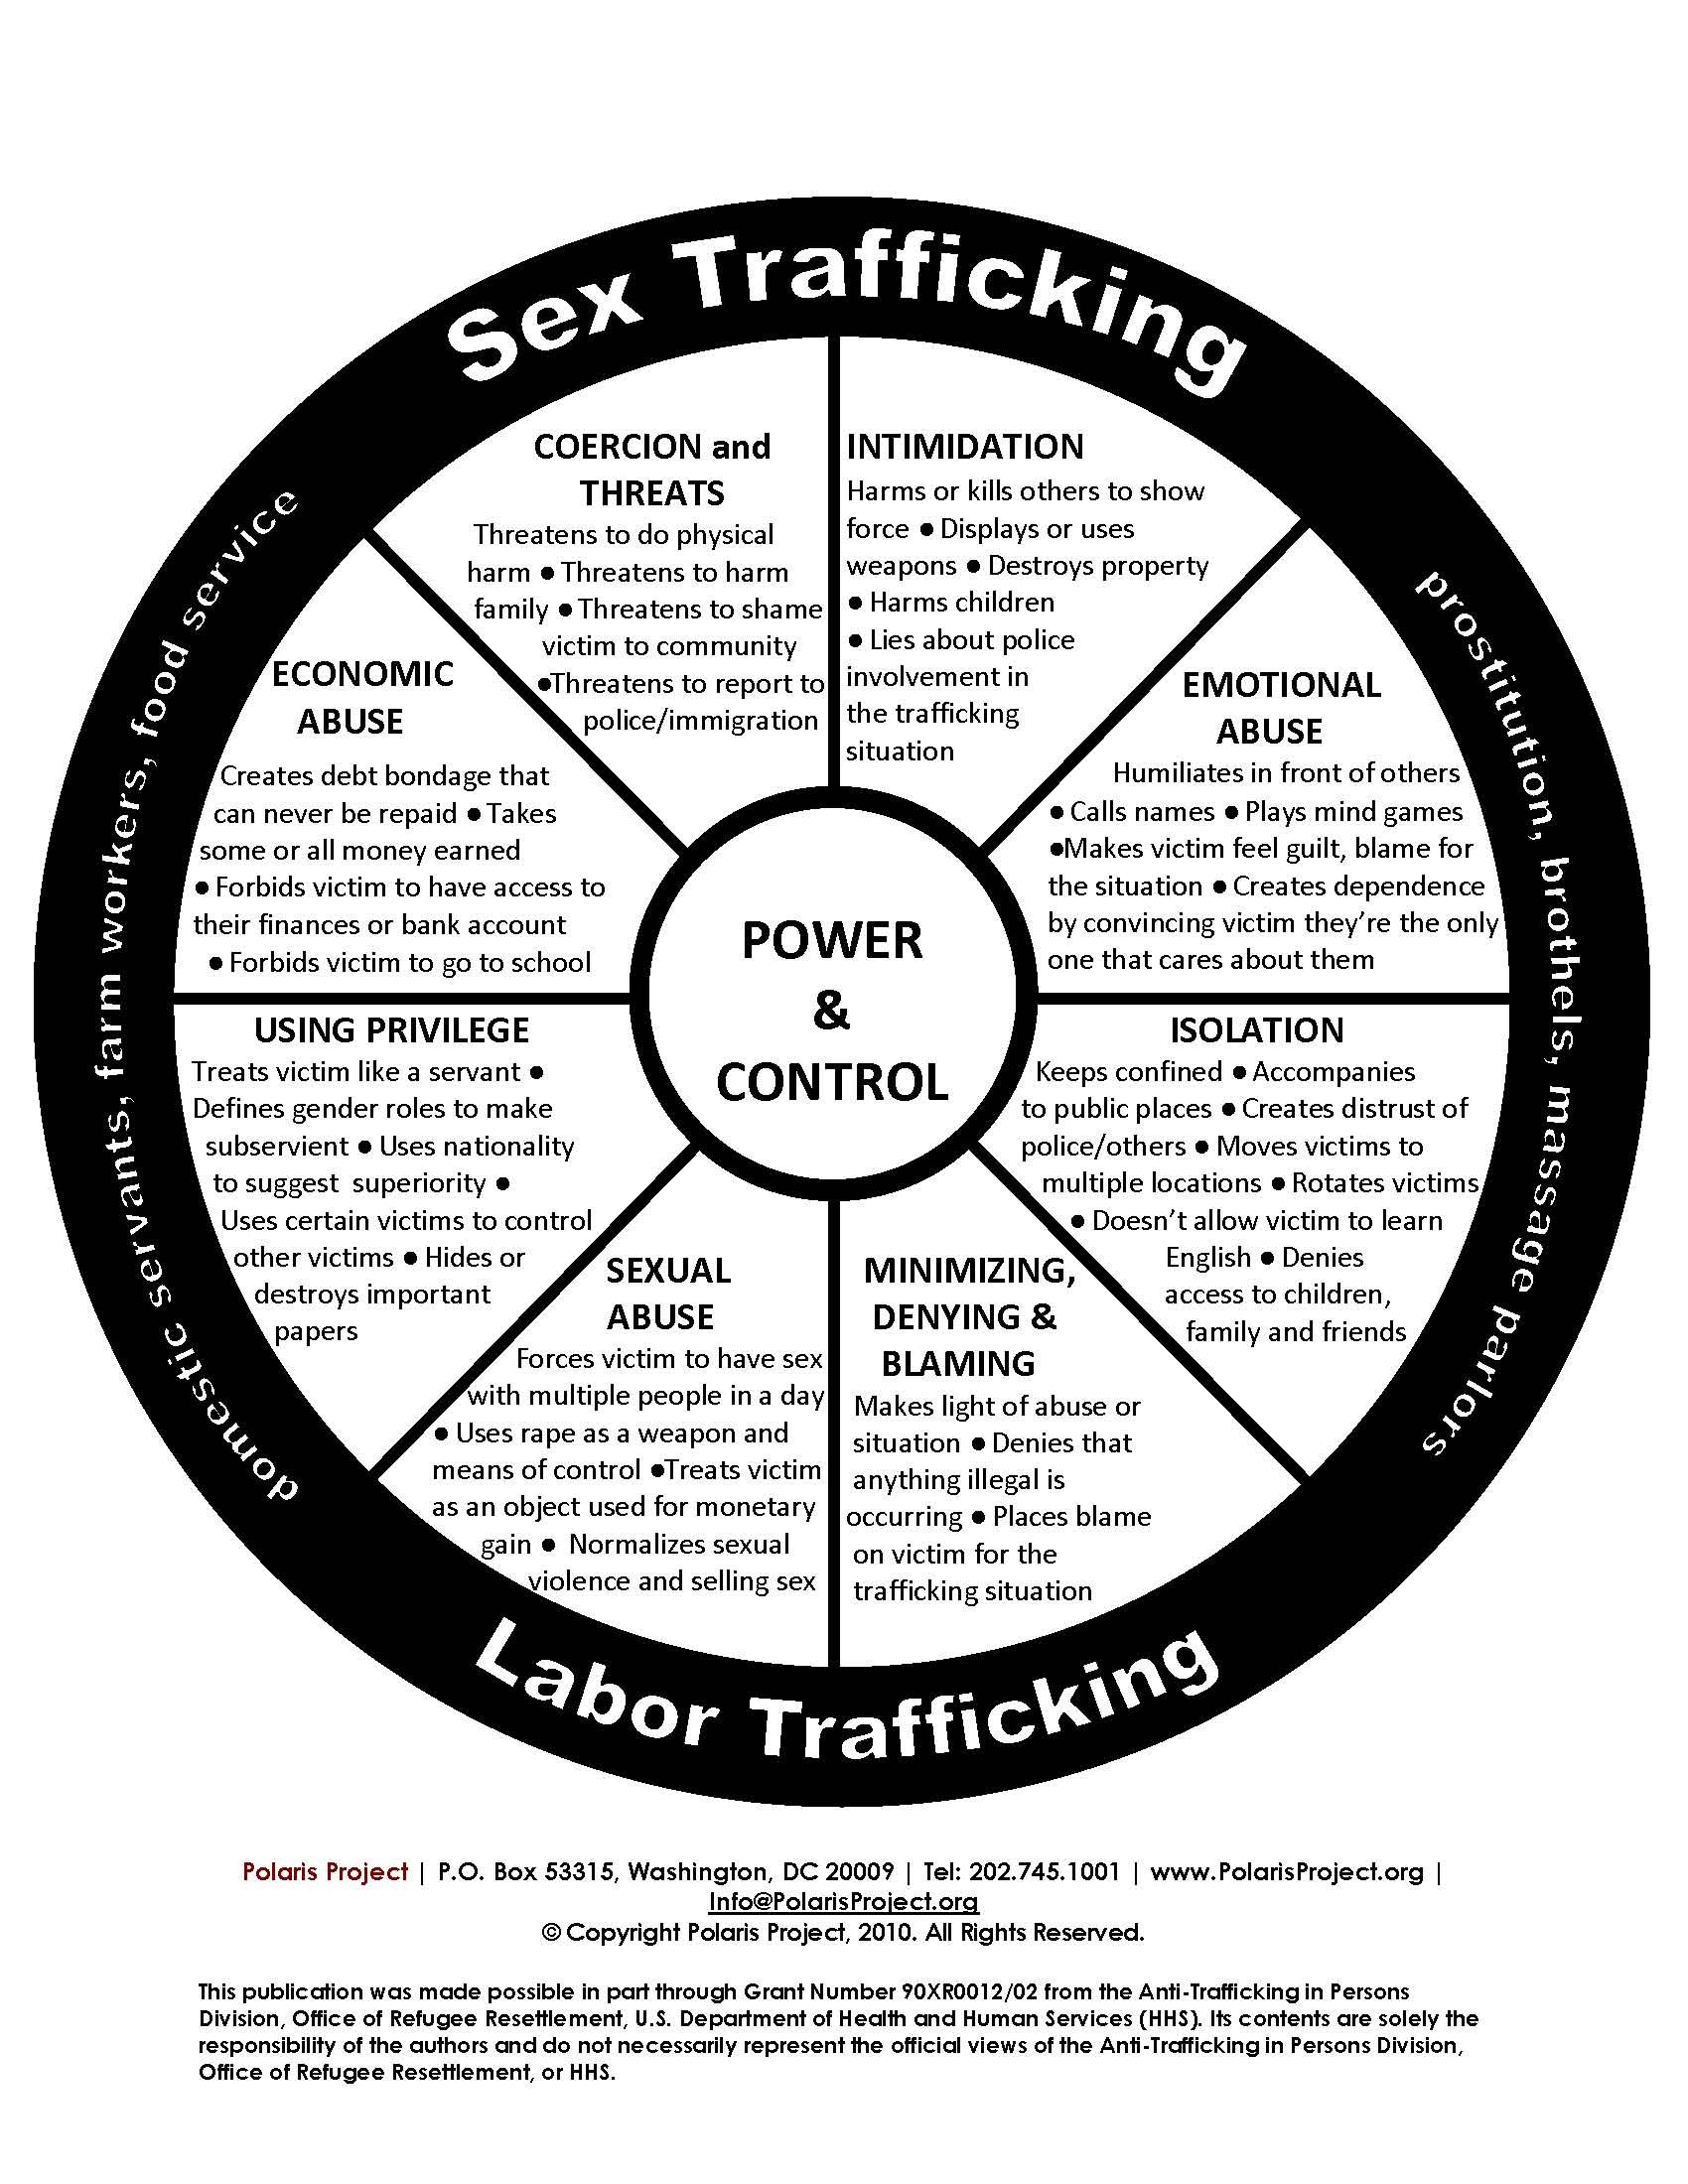 Where Does Domestic Violence Intersect Human Trafficking